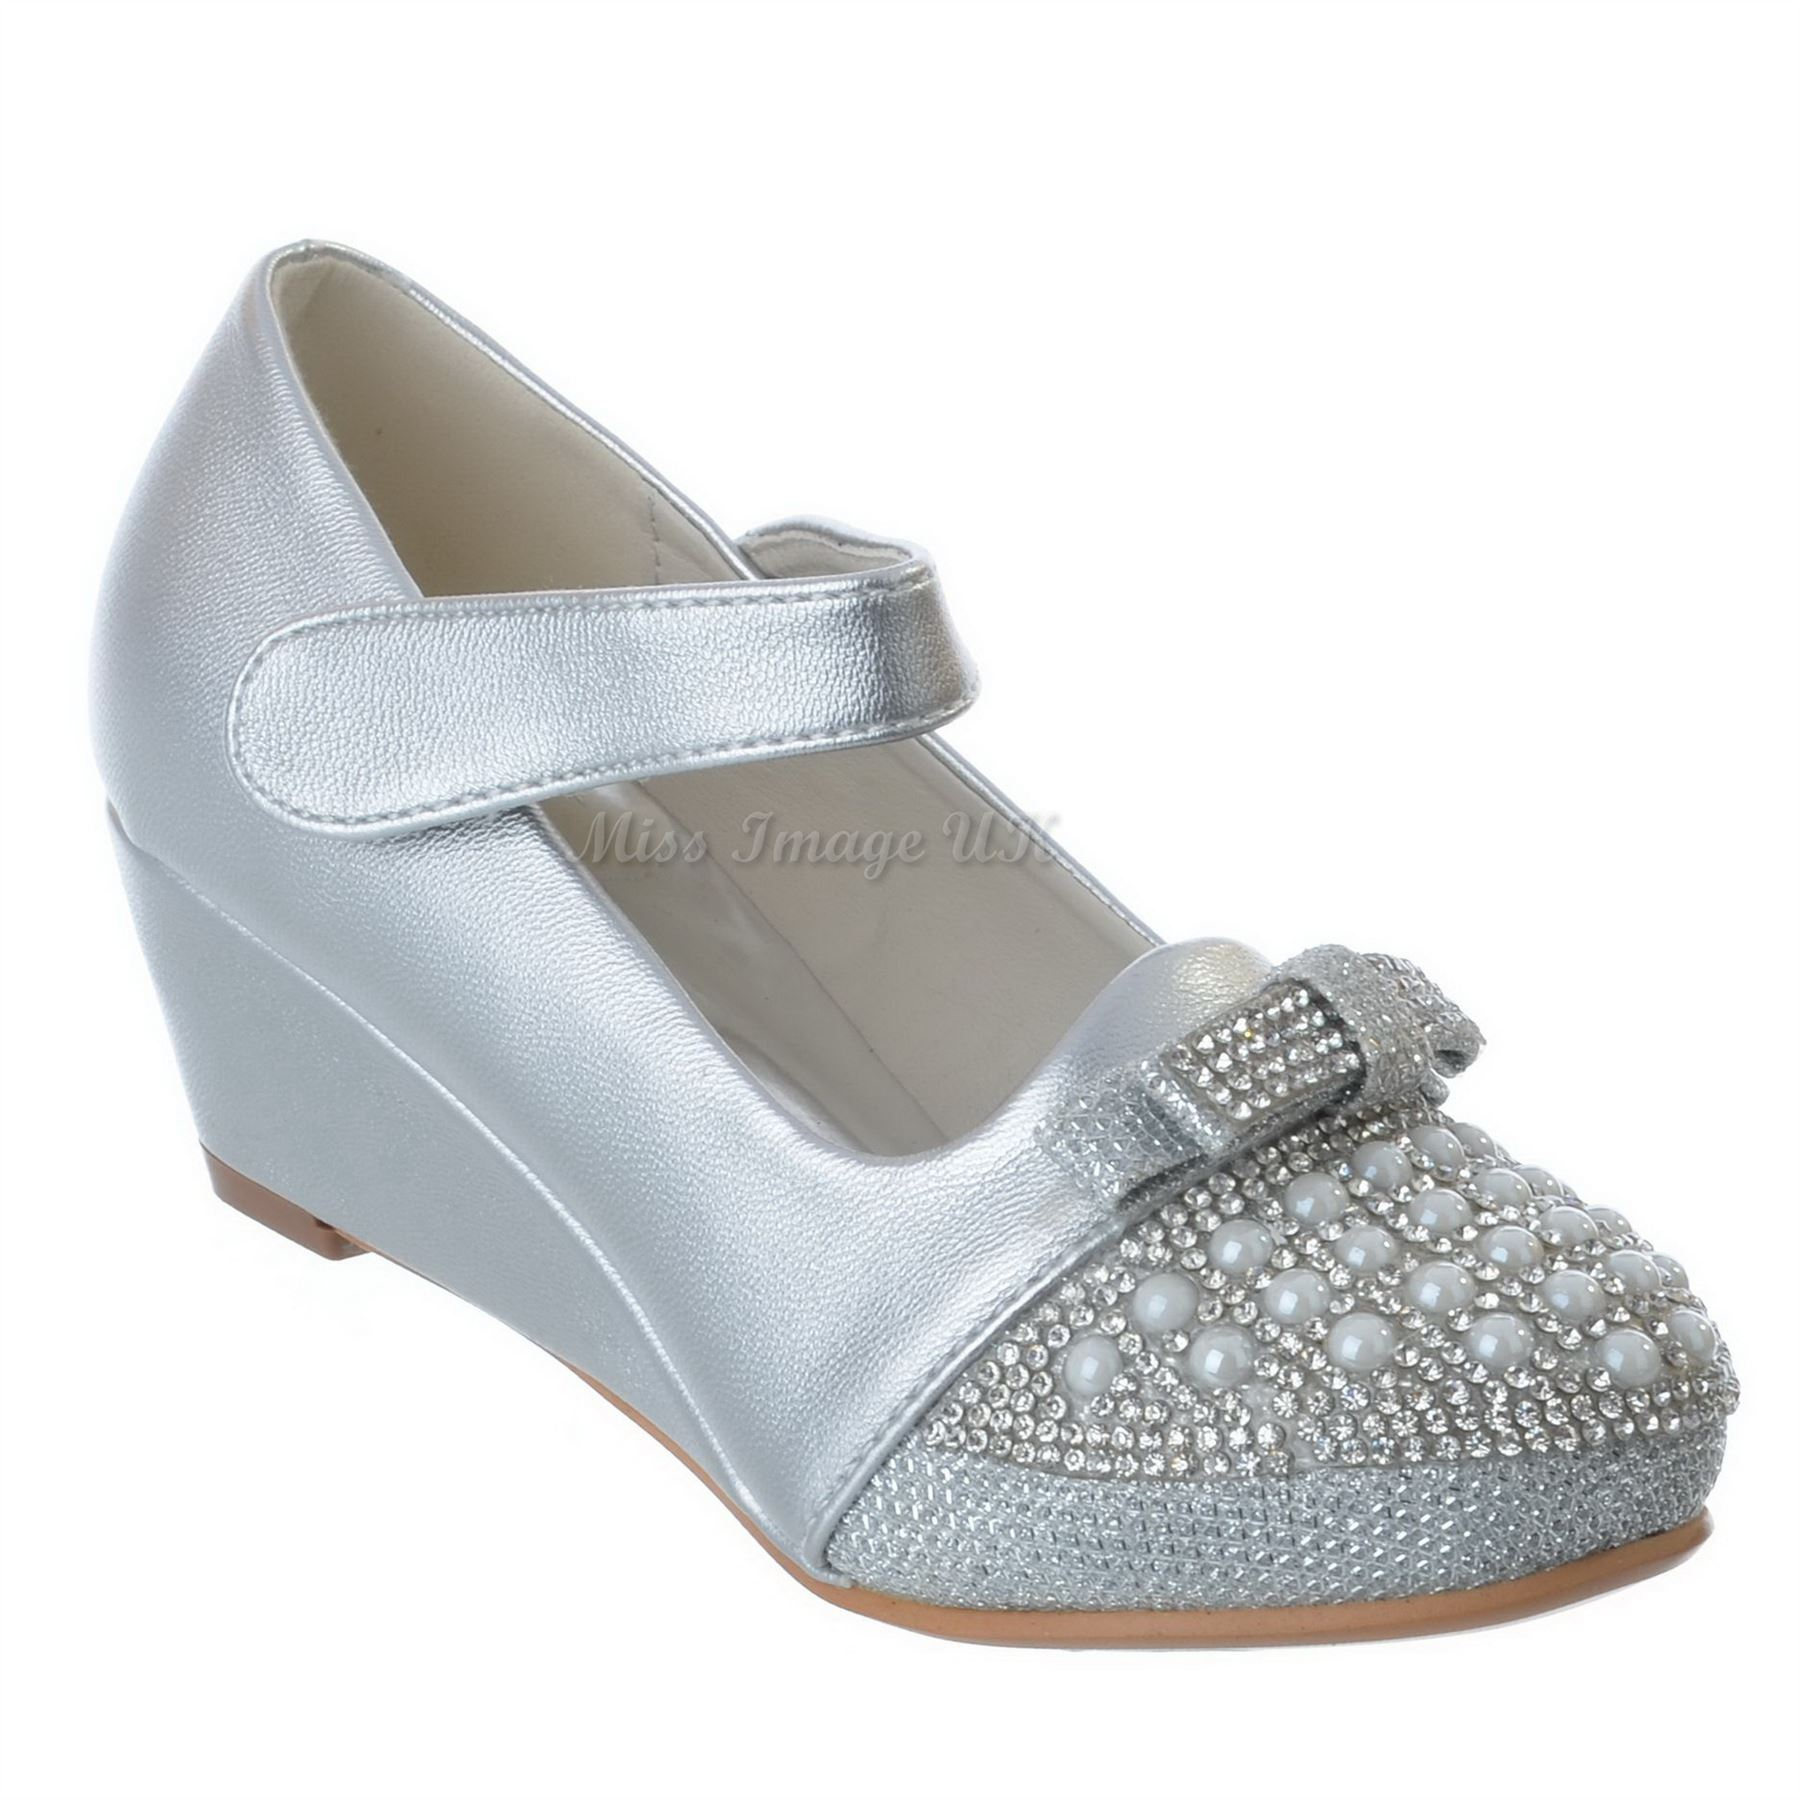 Girls Kids Low Wedge Heel Diamante Party Wedding Mary Jane